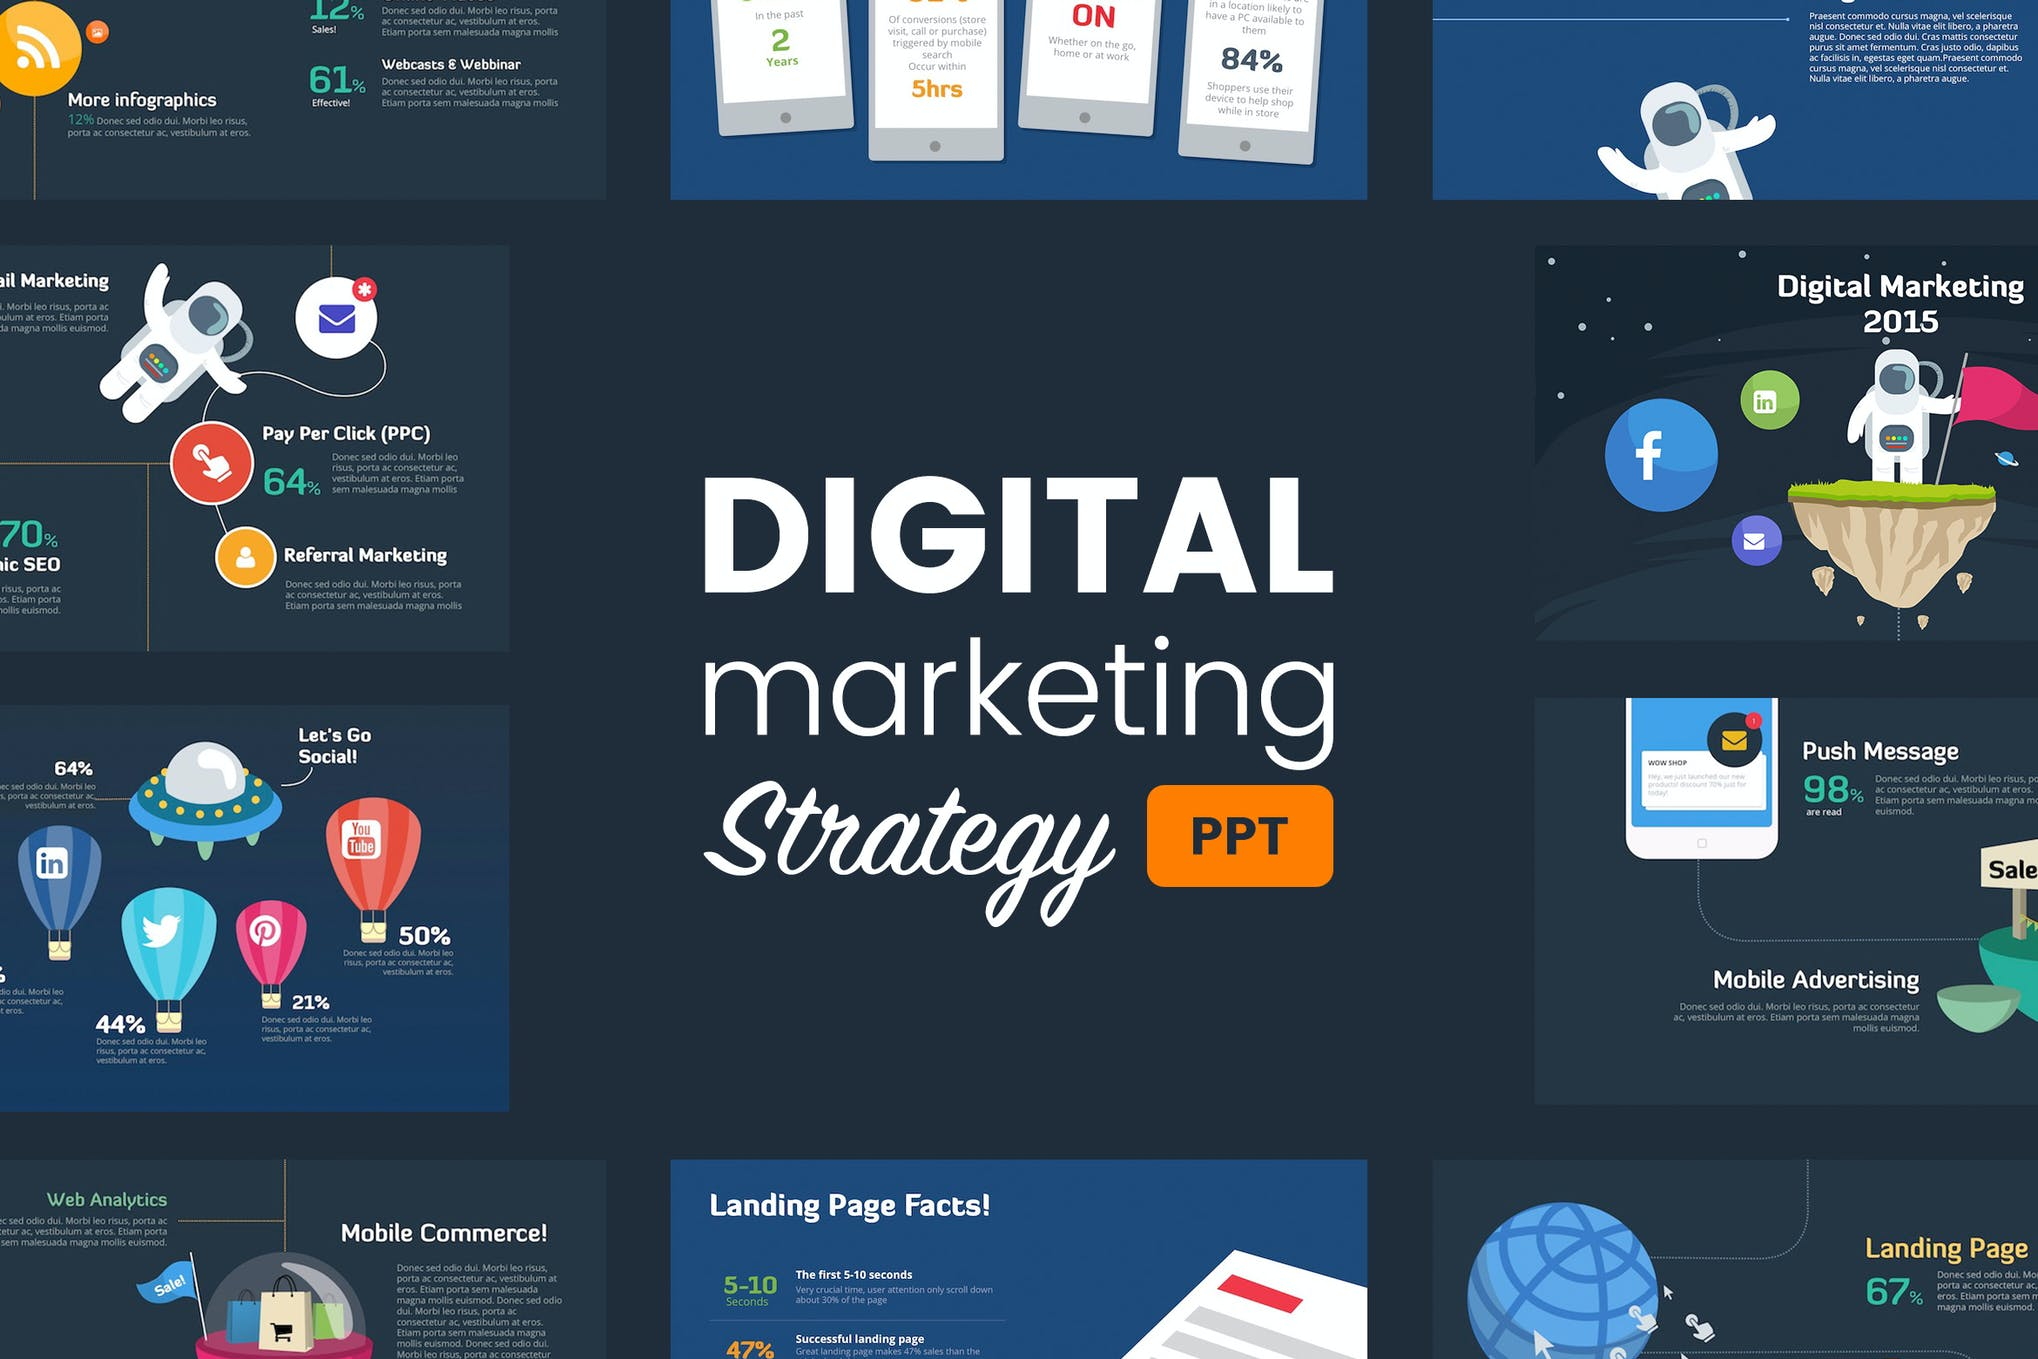 Digital Marketing Strategy - Powerpoint Template by